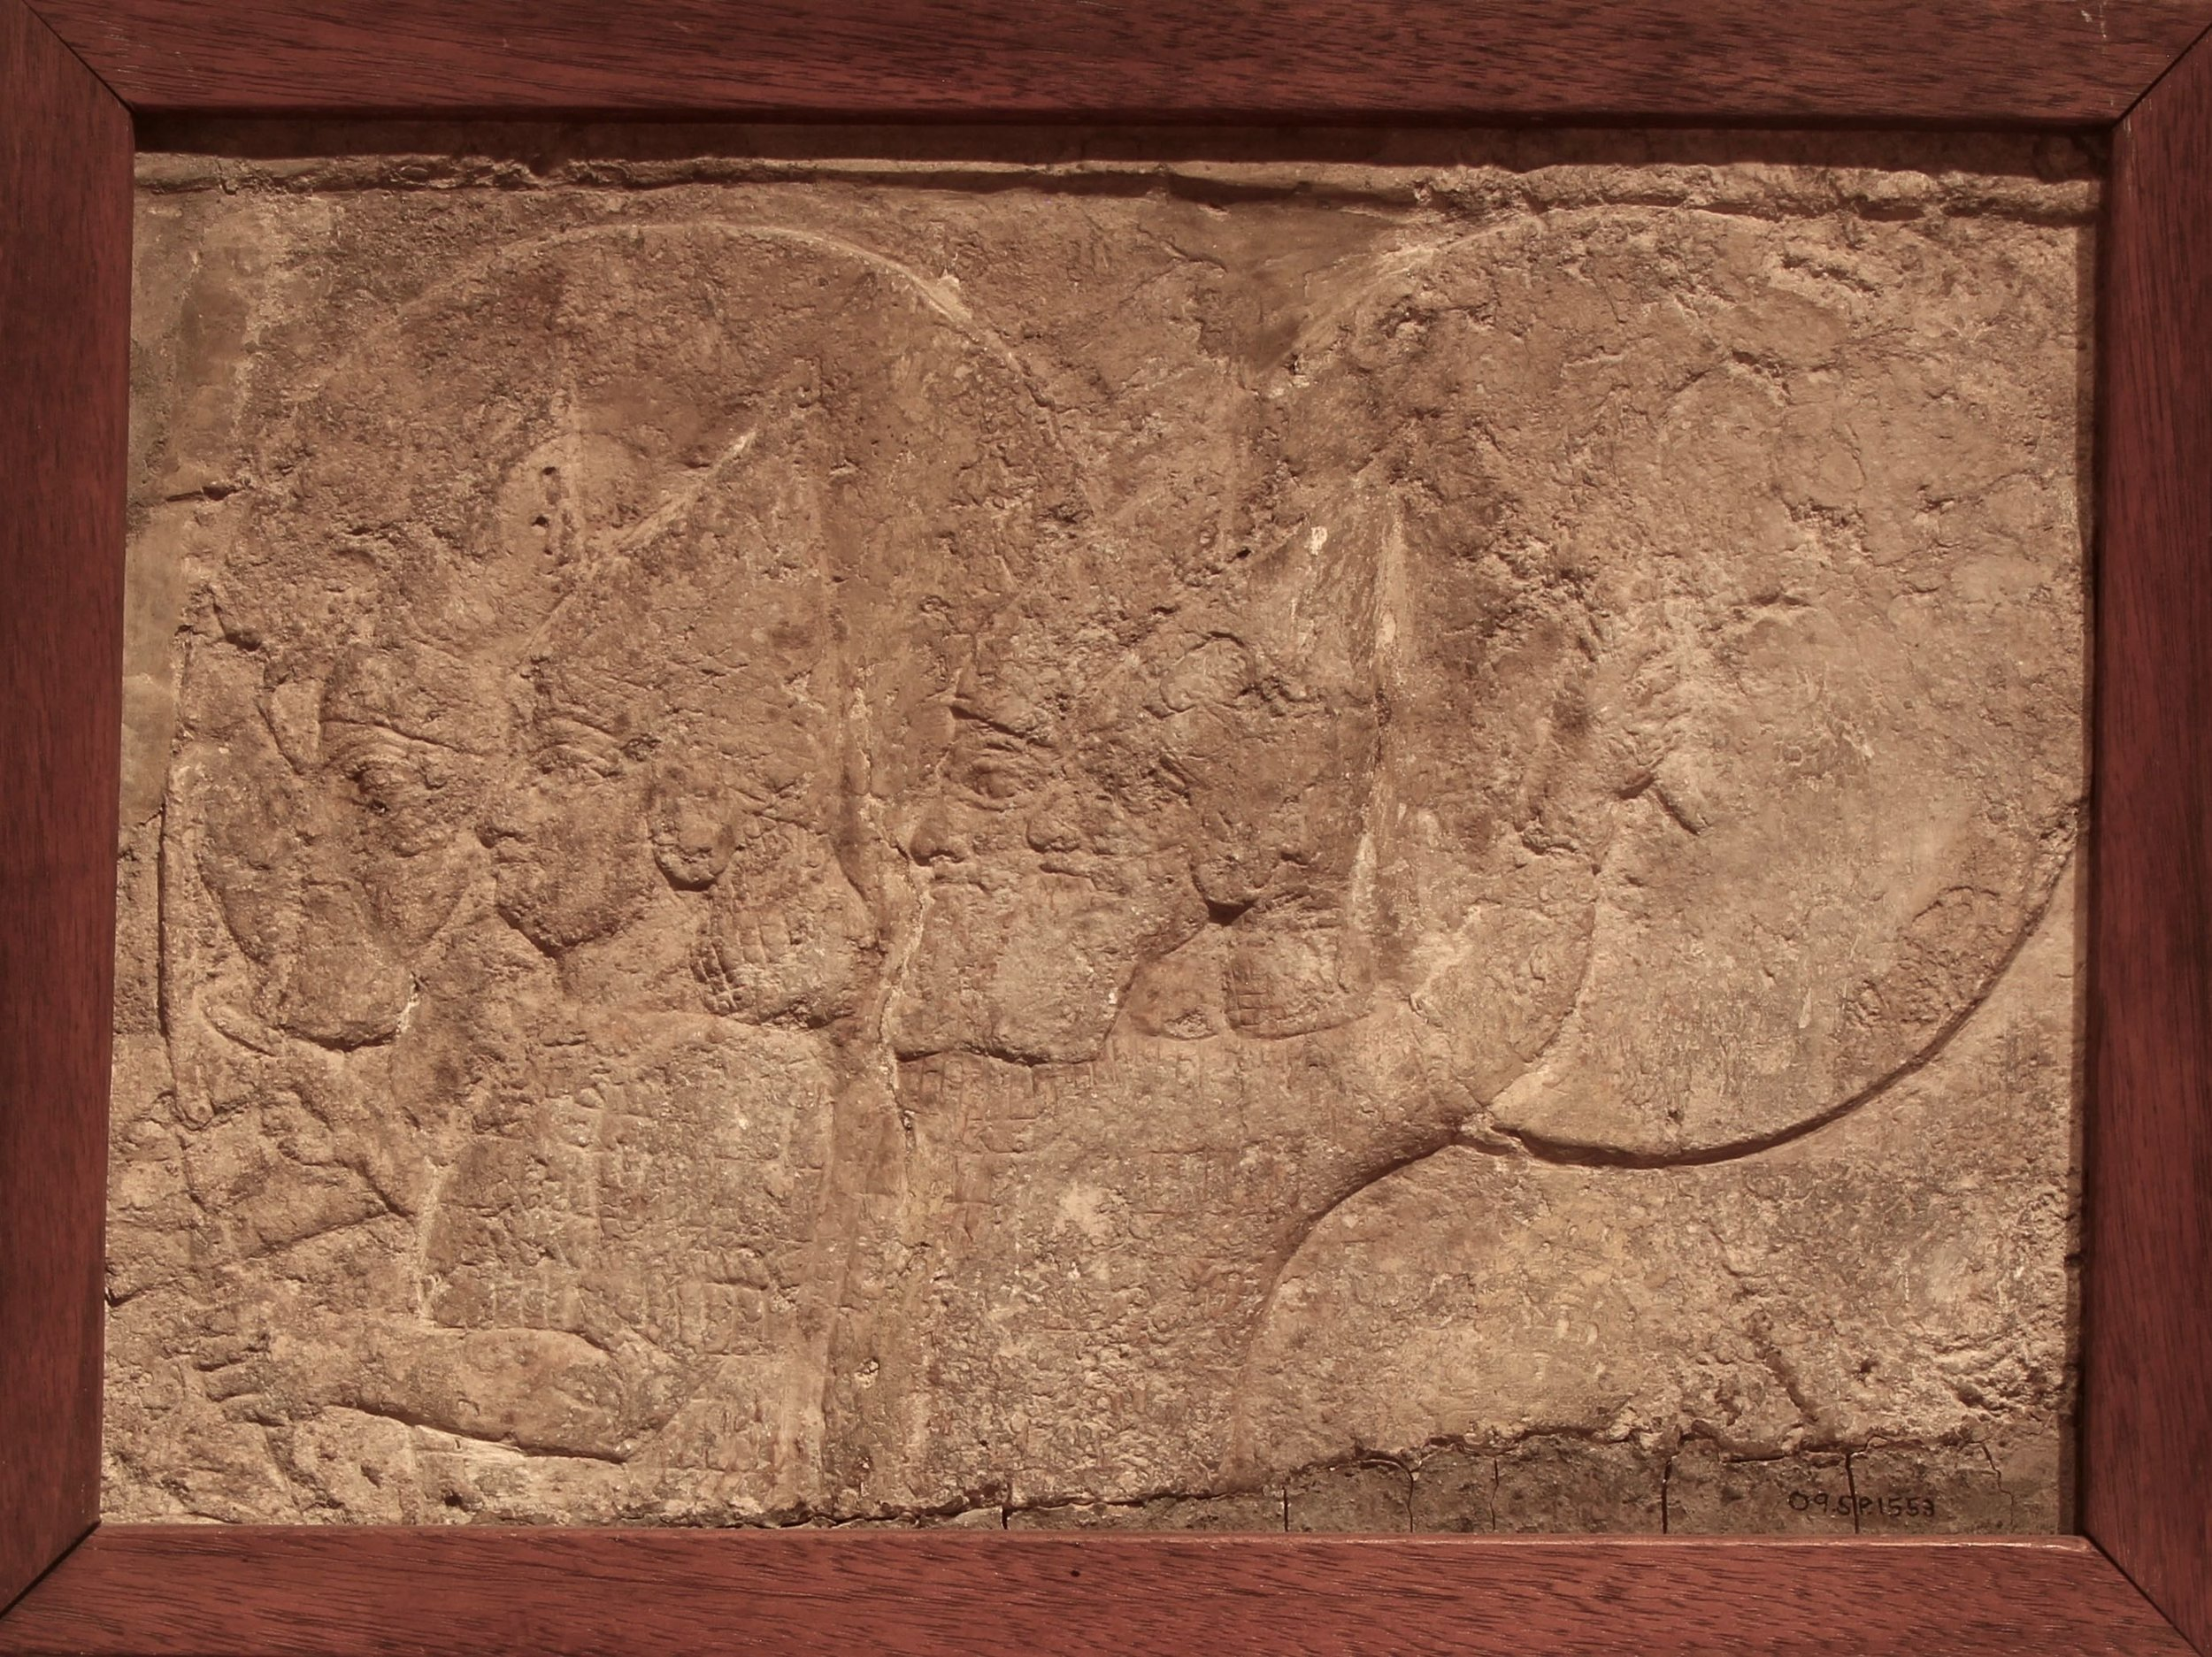 Figure 4: Assyrian soldiers in a chariot, North Palace of Ashurbanipal at Nineveh, Iraq. (09.SP.1553; 19 x 27 cm)